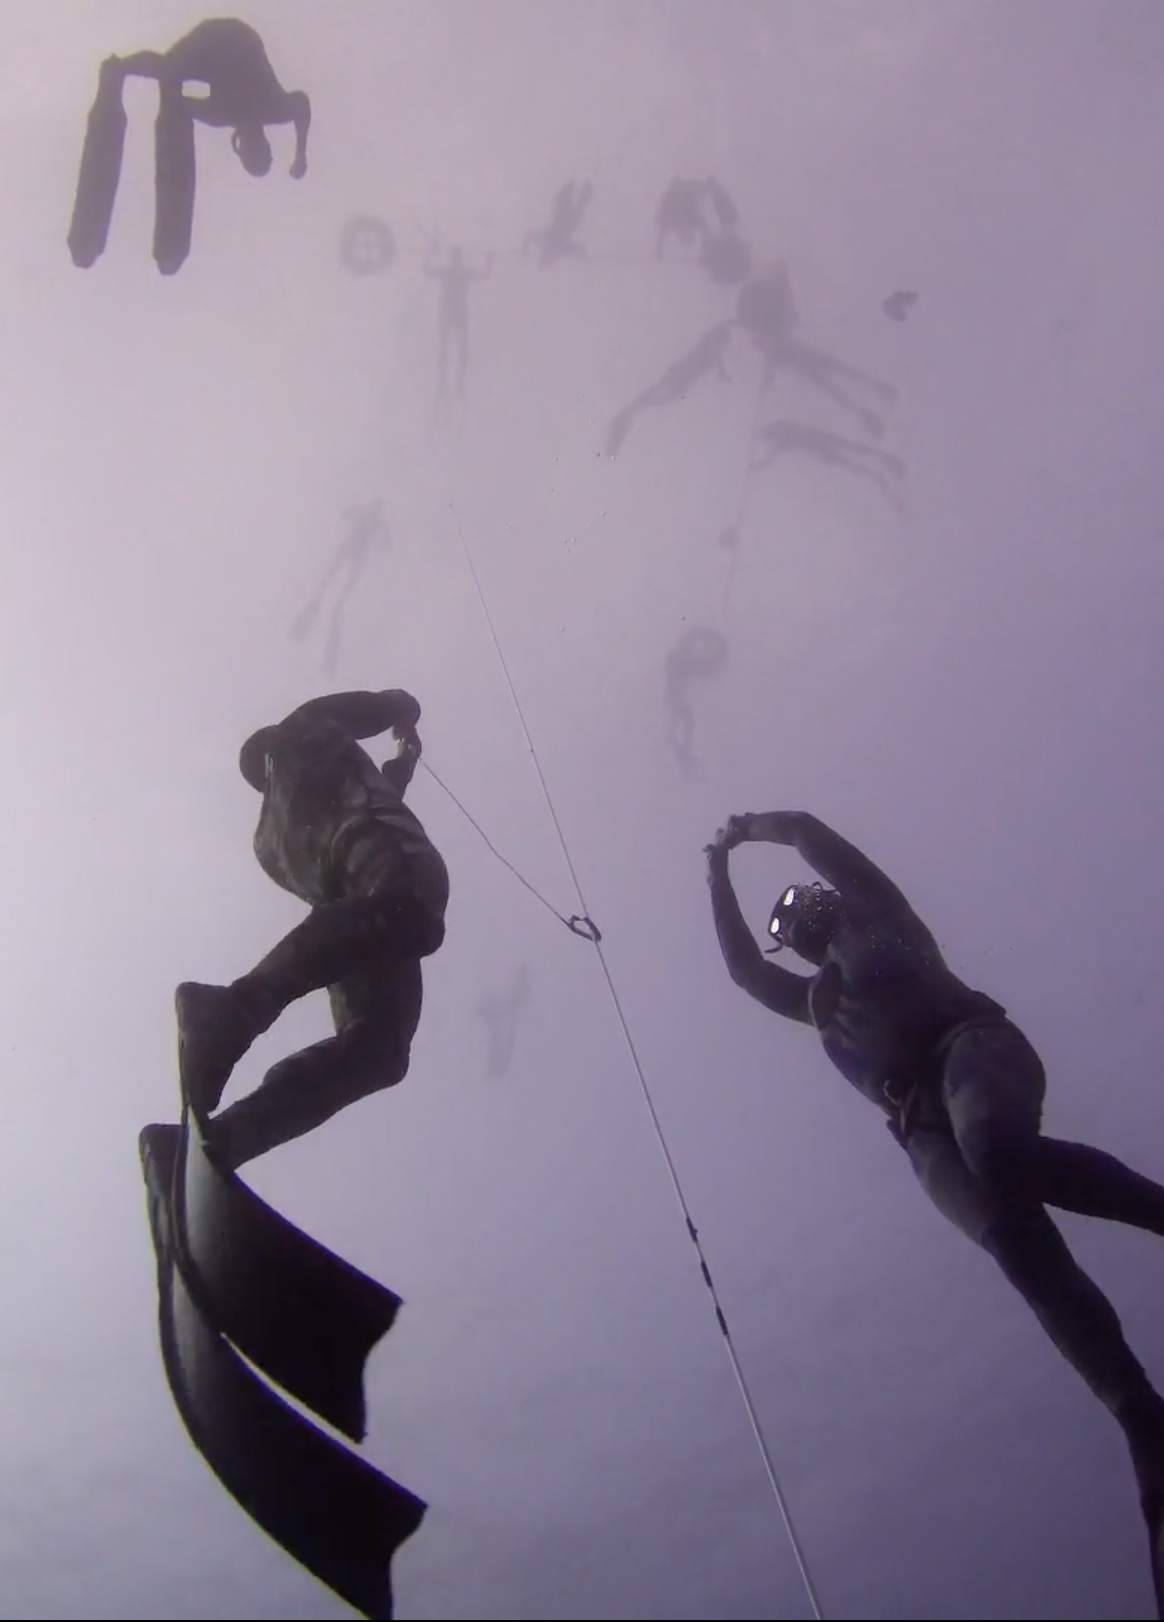 A brief history of physics of Freediving